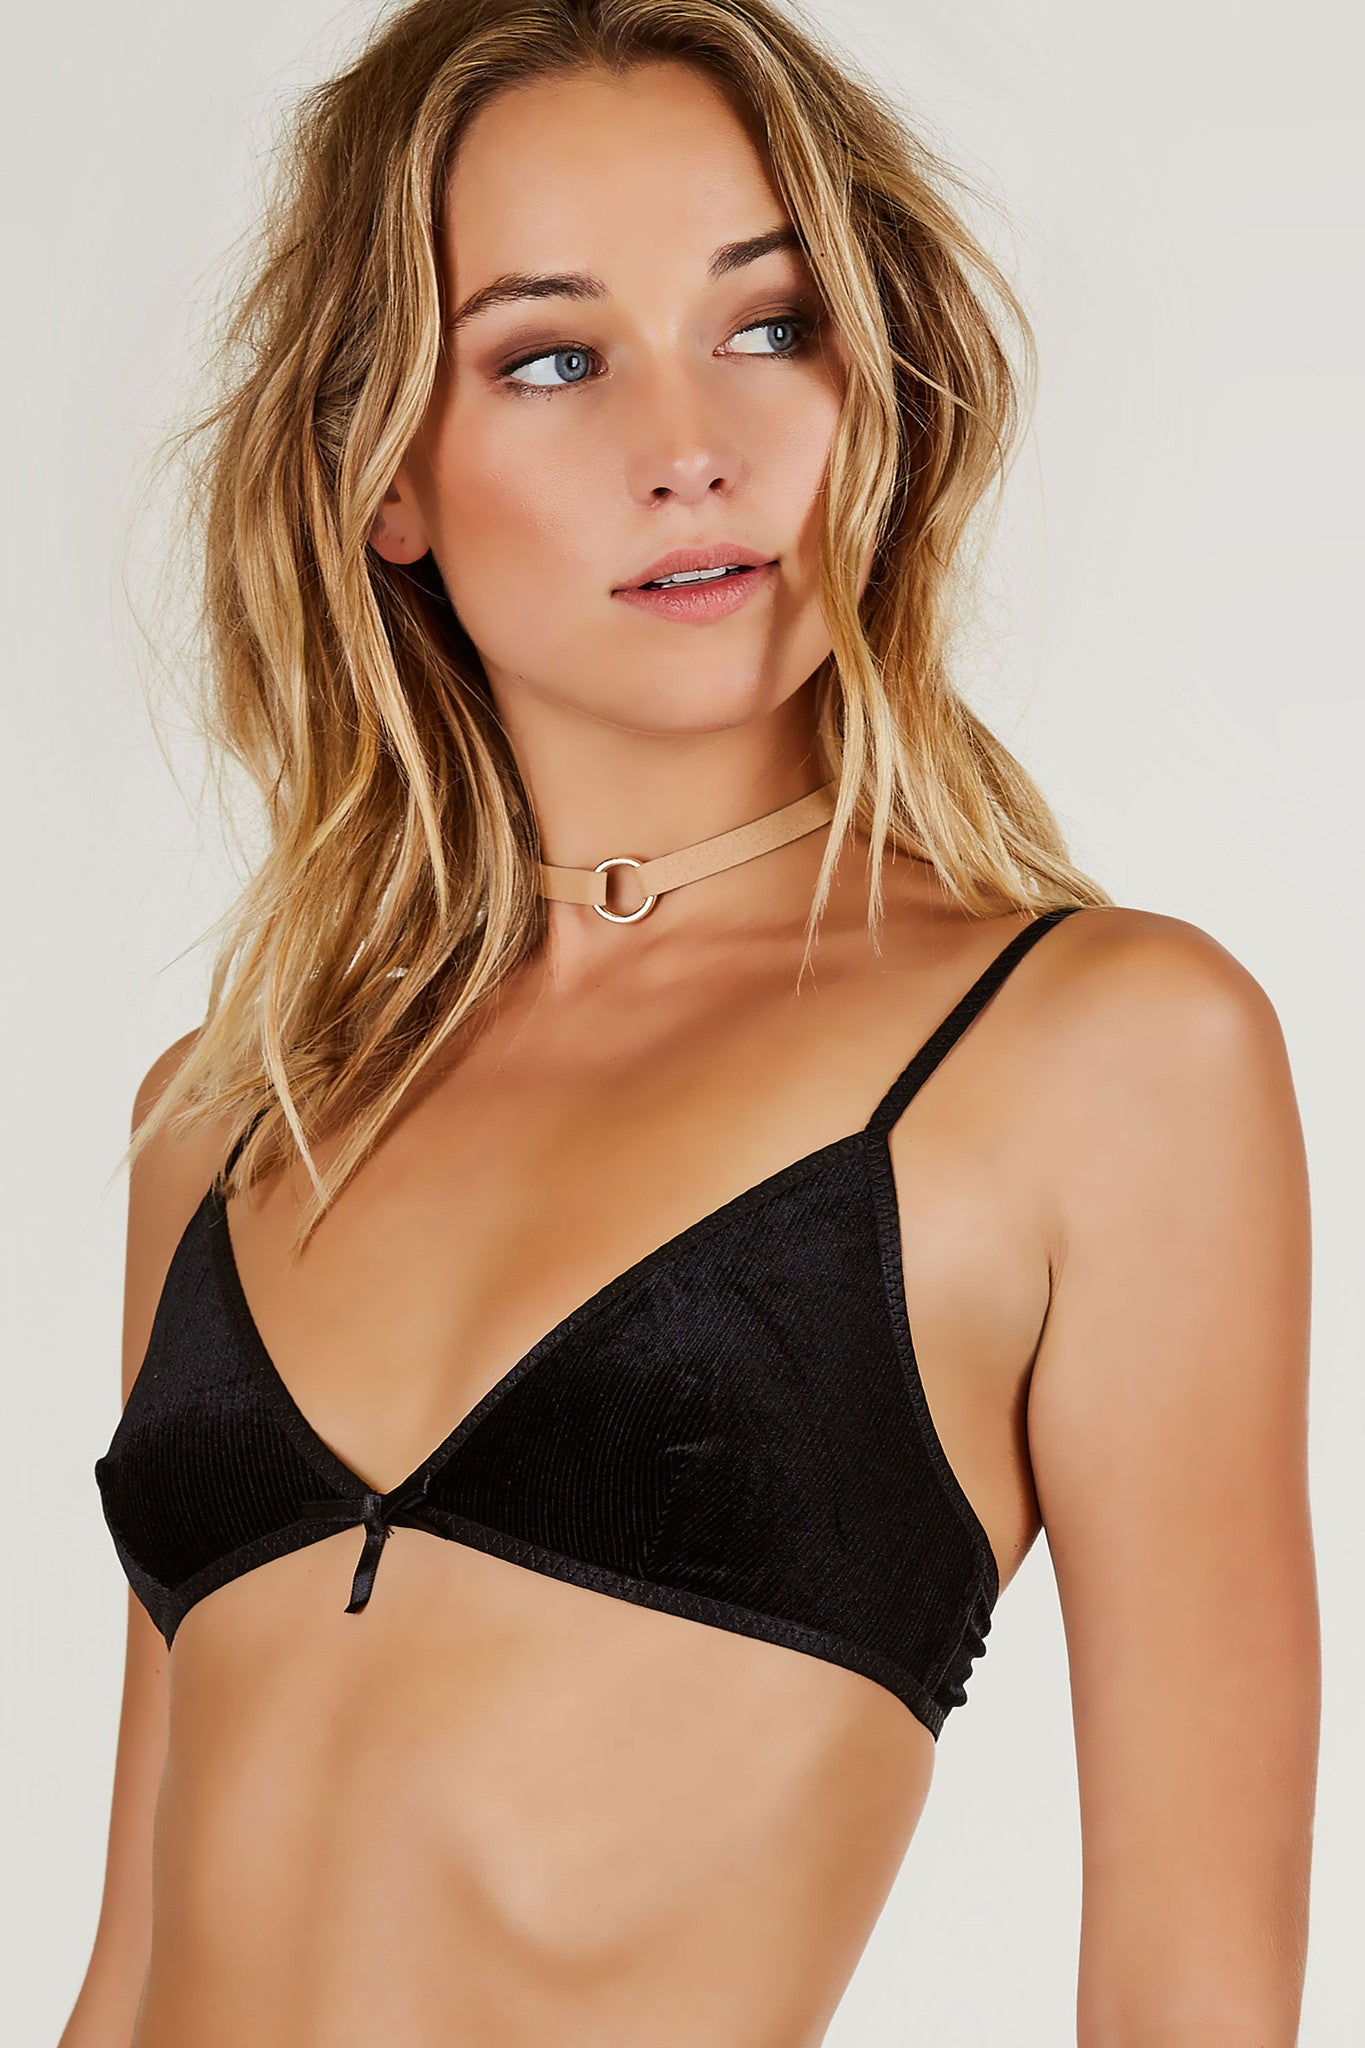 Basic V-neck bralette with velvet finish. Ribbed throughout with hook and eye clasps for fit and closure with adjustable shoulder straps.